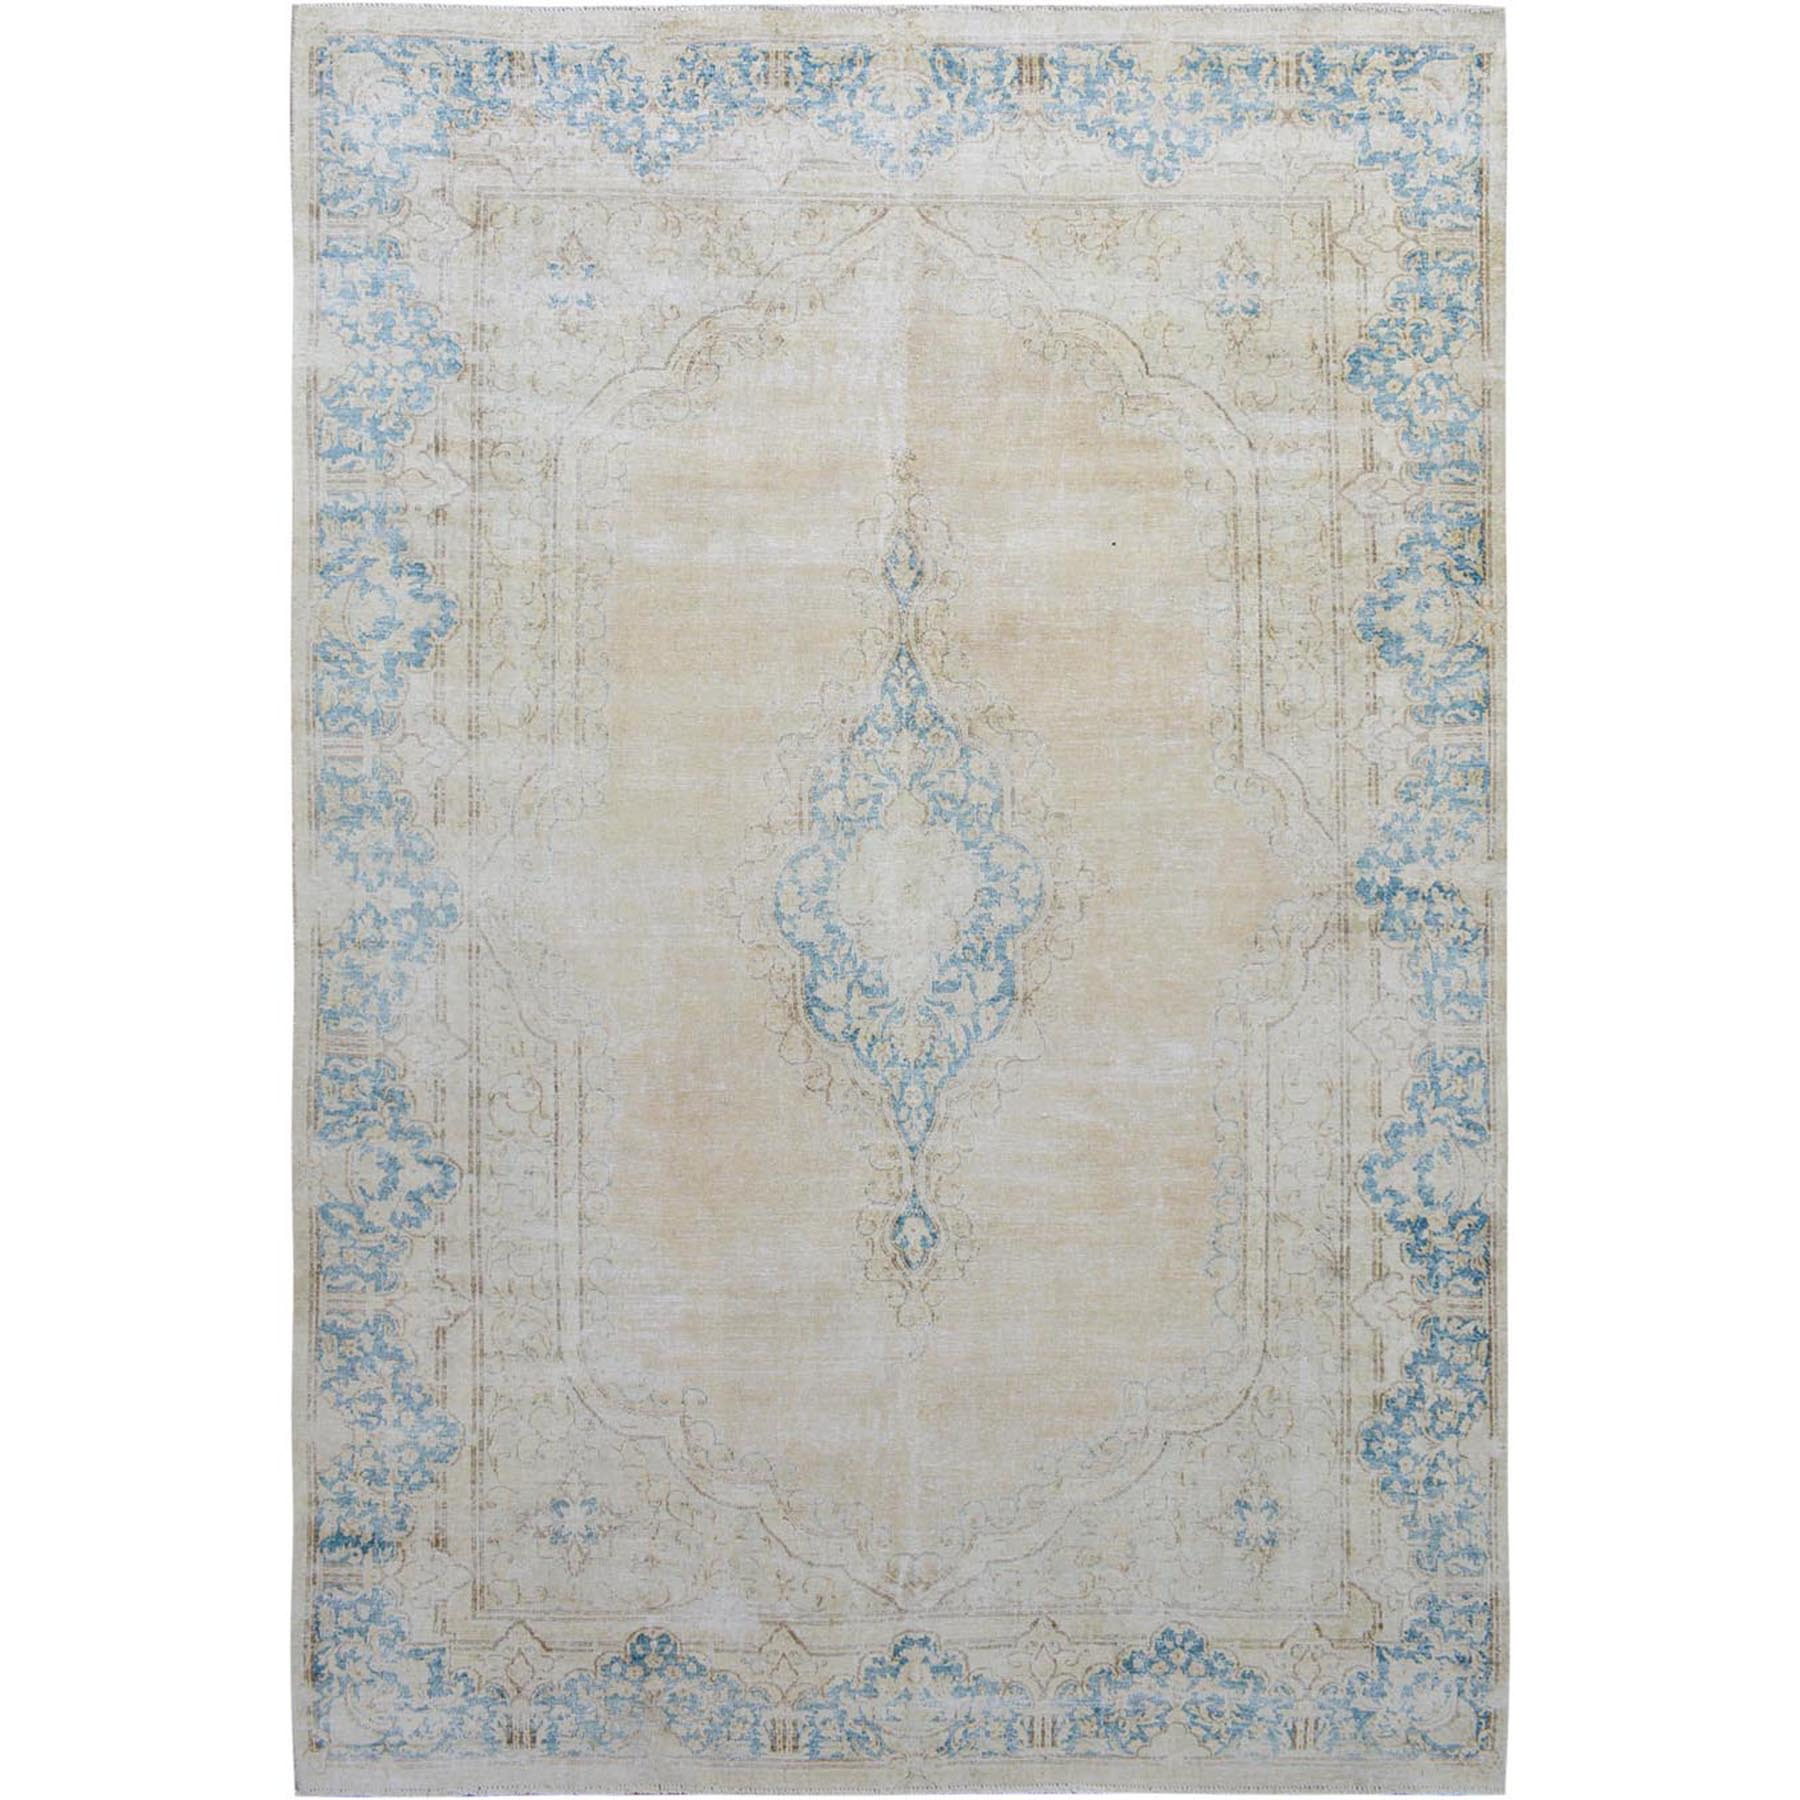 "6'7""x9'8"" Ivory Washed Out and Worn Down Vintage Persian Kerman Pure Wool Hand Woven Oriental Rug"